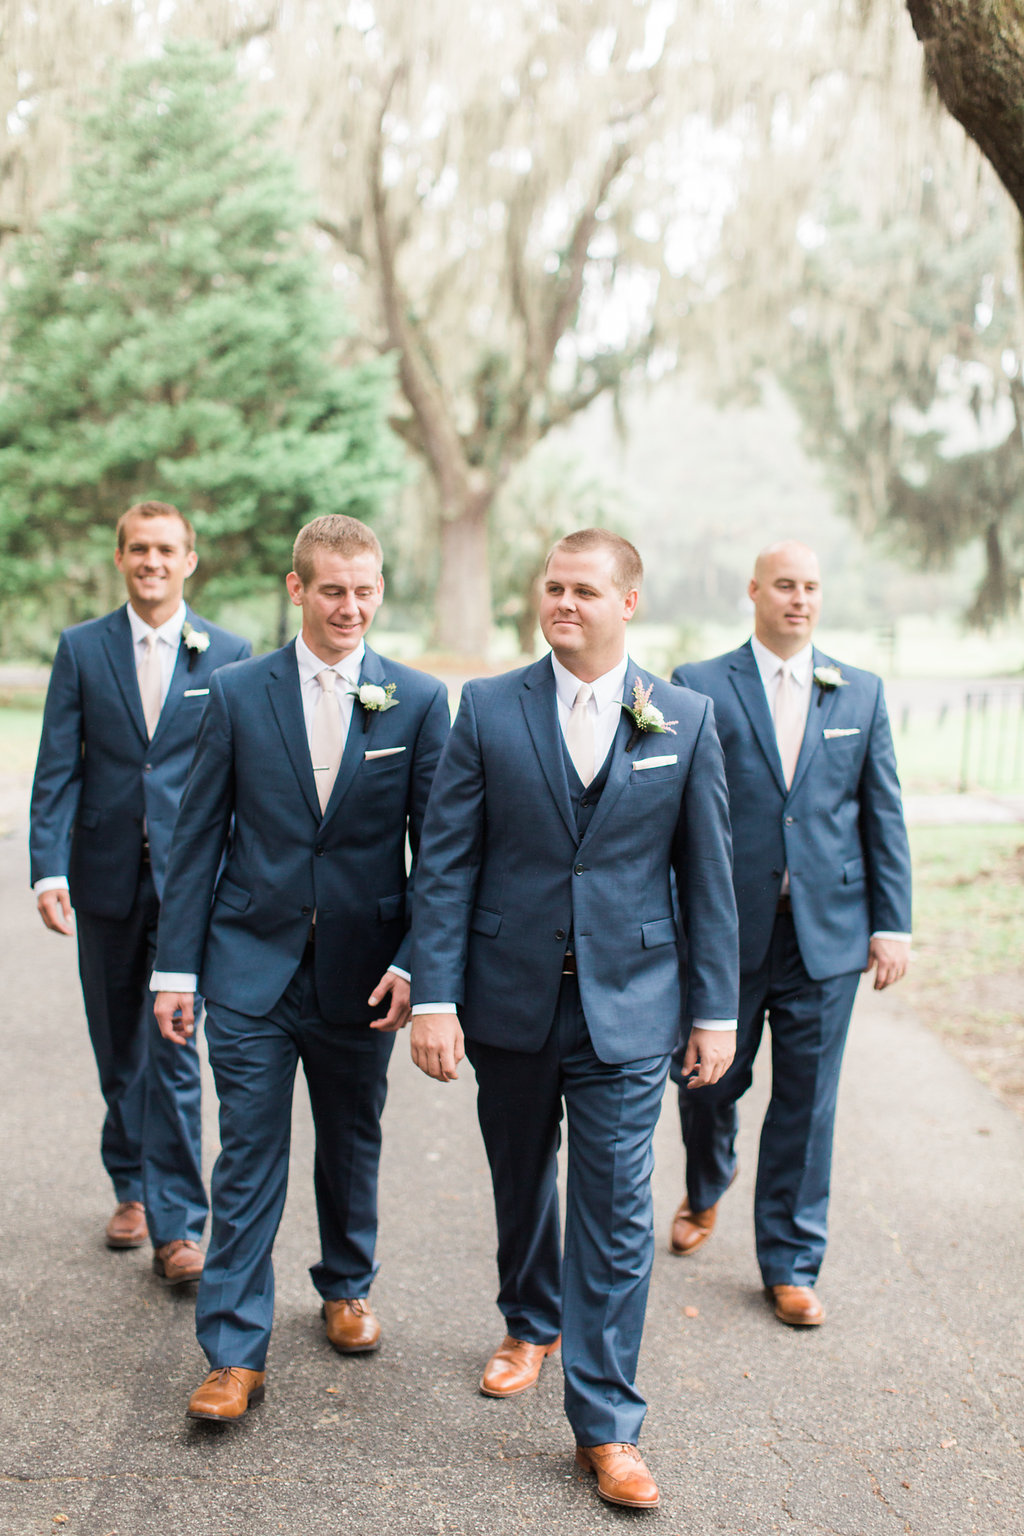 the-happy-bloom-photography-ivory-and-beau-wedding-planning-ivory-and-beau-bridal-boutique-whitfield-chapel-wedding-10-downing-wedding-savannah-wedding-historic-savannah-wedding-savannah-wedding-planner-savannah-weddings-a-to-zinnias-7.jpg